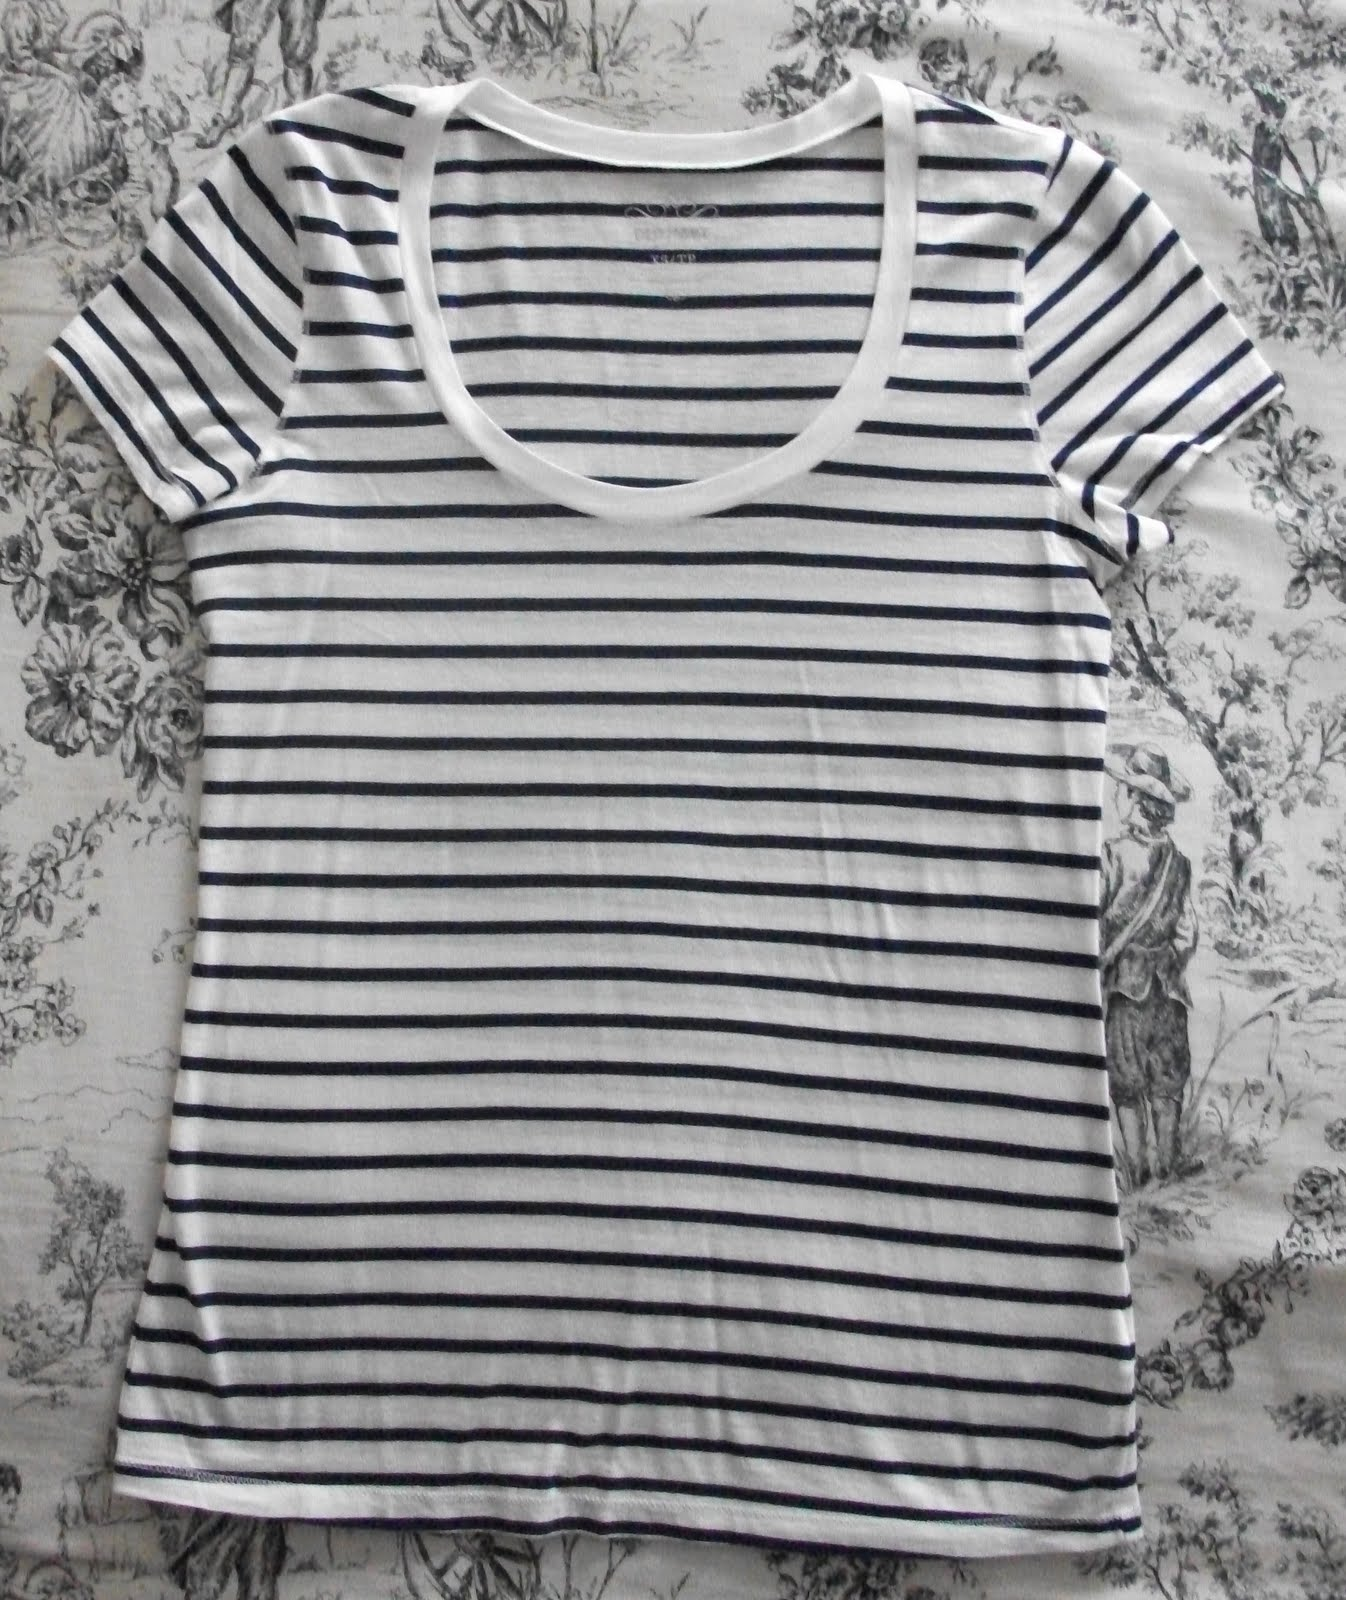 Black t shirt old navy - I Have This In The Blue Stripe Which Is Actually A Deeper Navy Blue Irl Great Little Tee For The Price